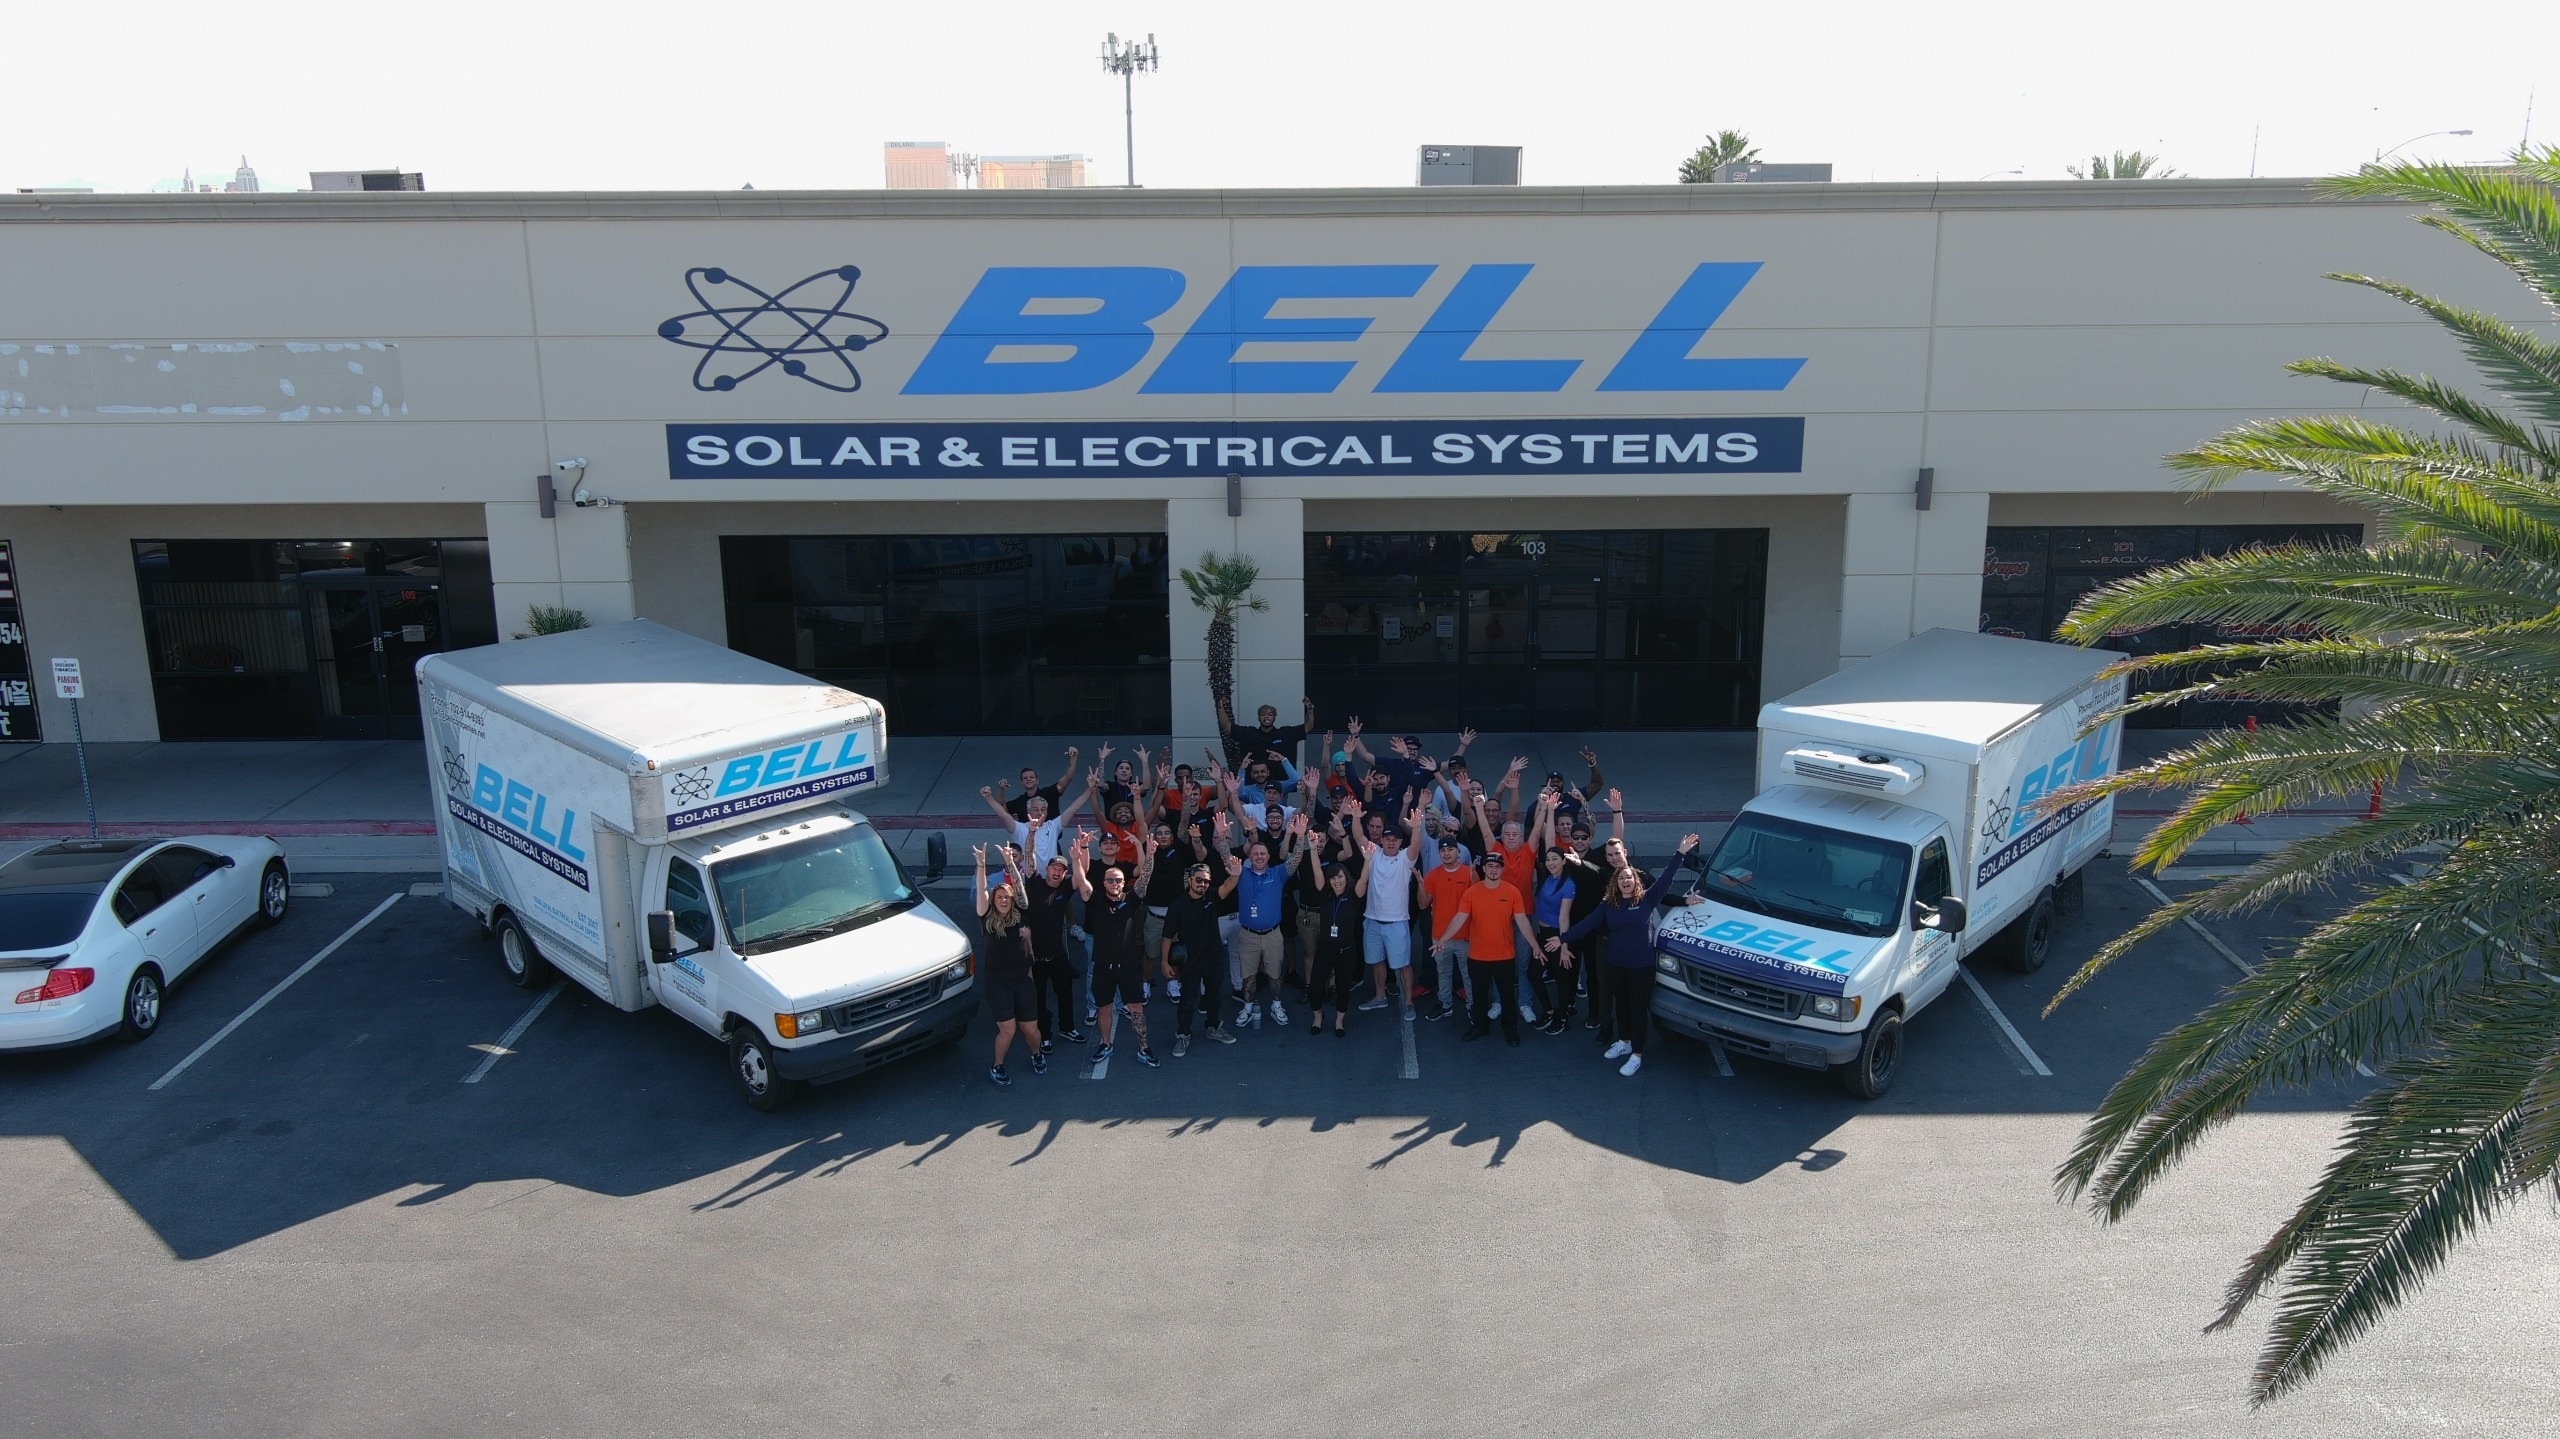 Meet the Team behind Bell Solar and Electrical Systems